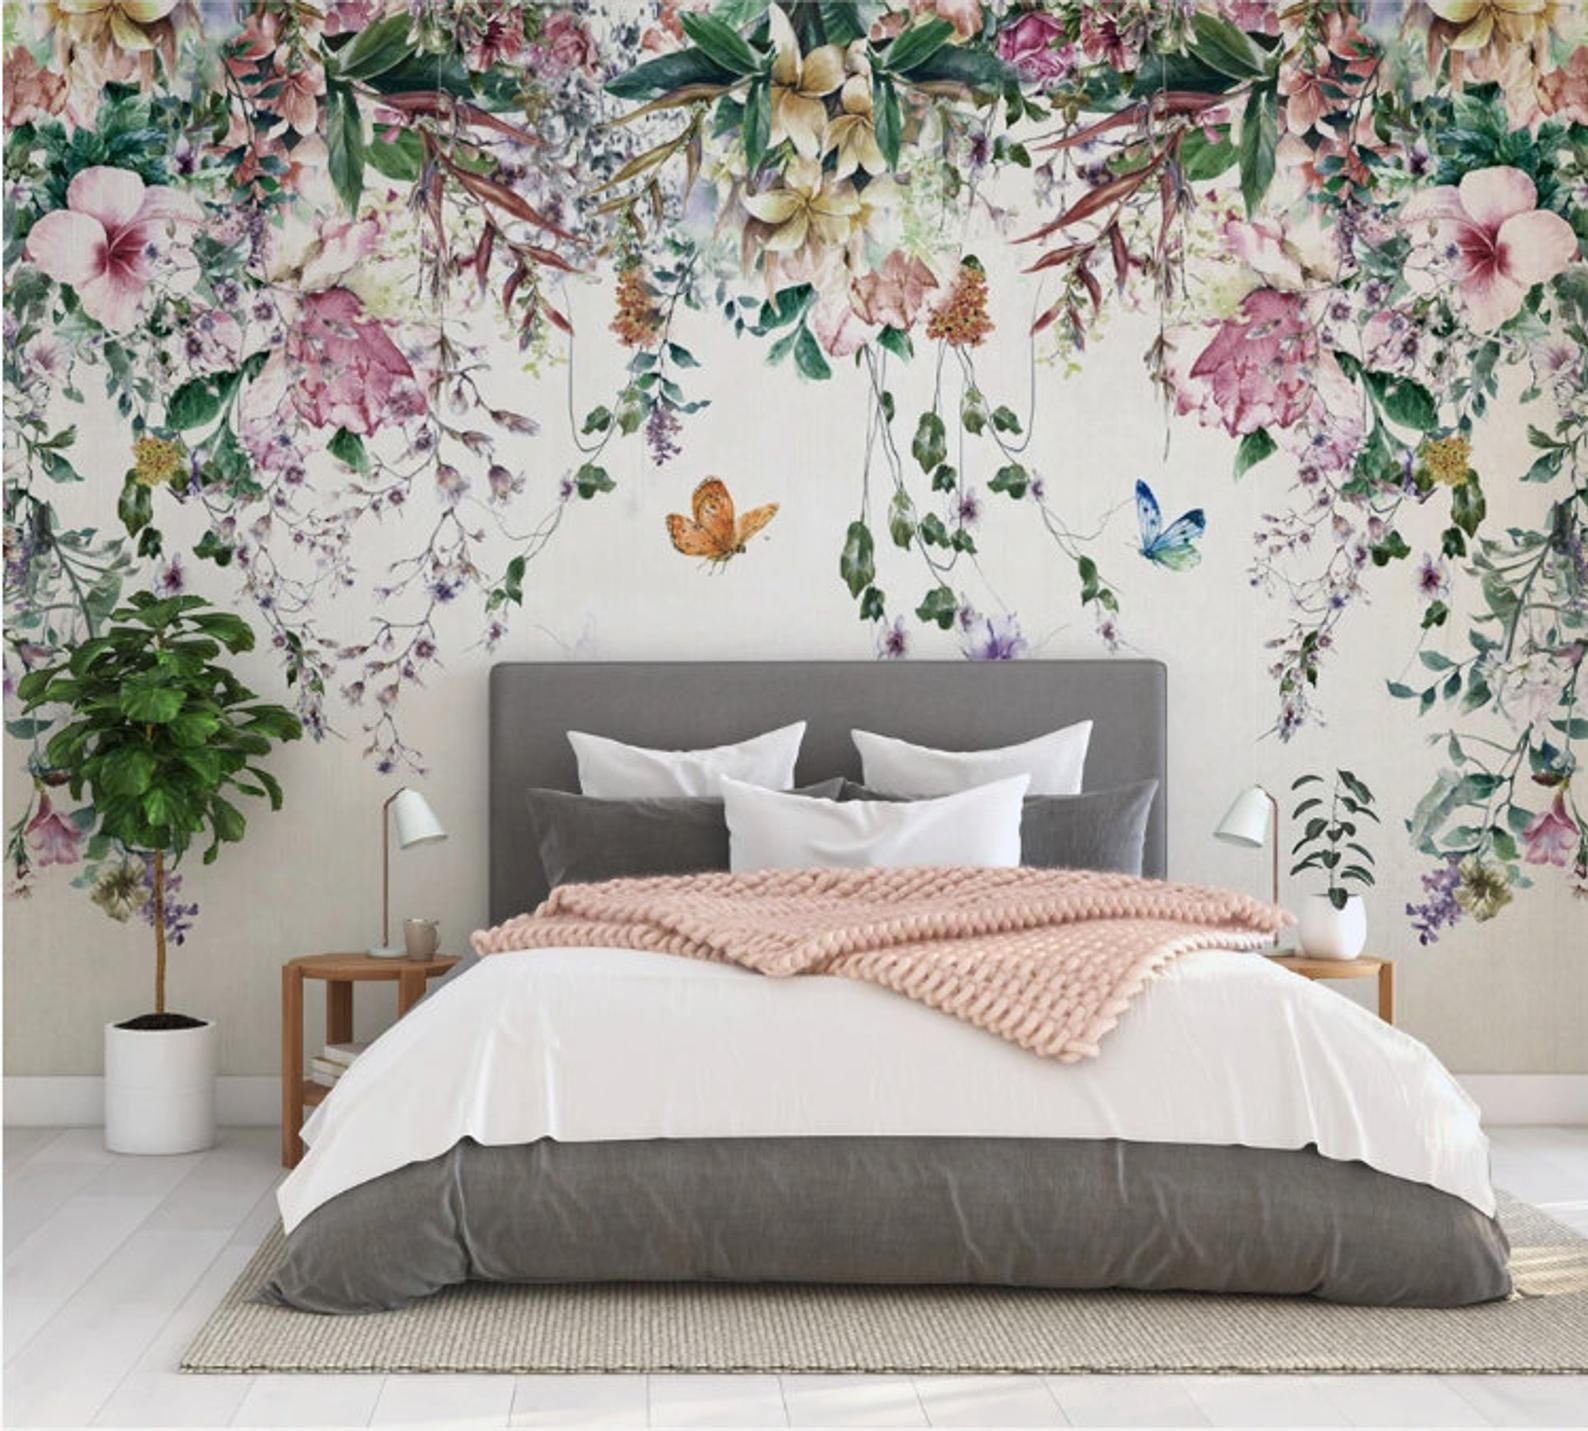 Colorful Flowers And Leaves Floral Wallpaper Self Adhesive Etsy Floral Wallpaper Bedroom Feature Wall Bedroom Wallpaper Bedroom Feature Wall Flower bedroom wallpaper images